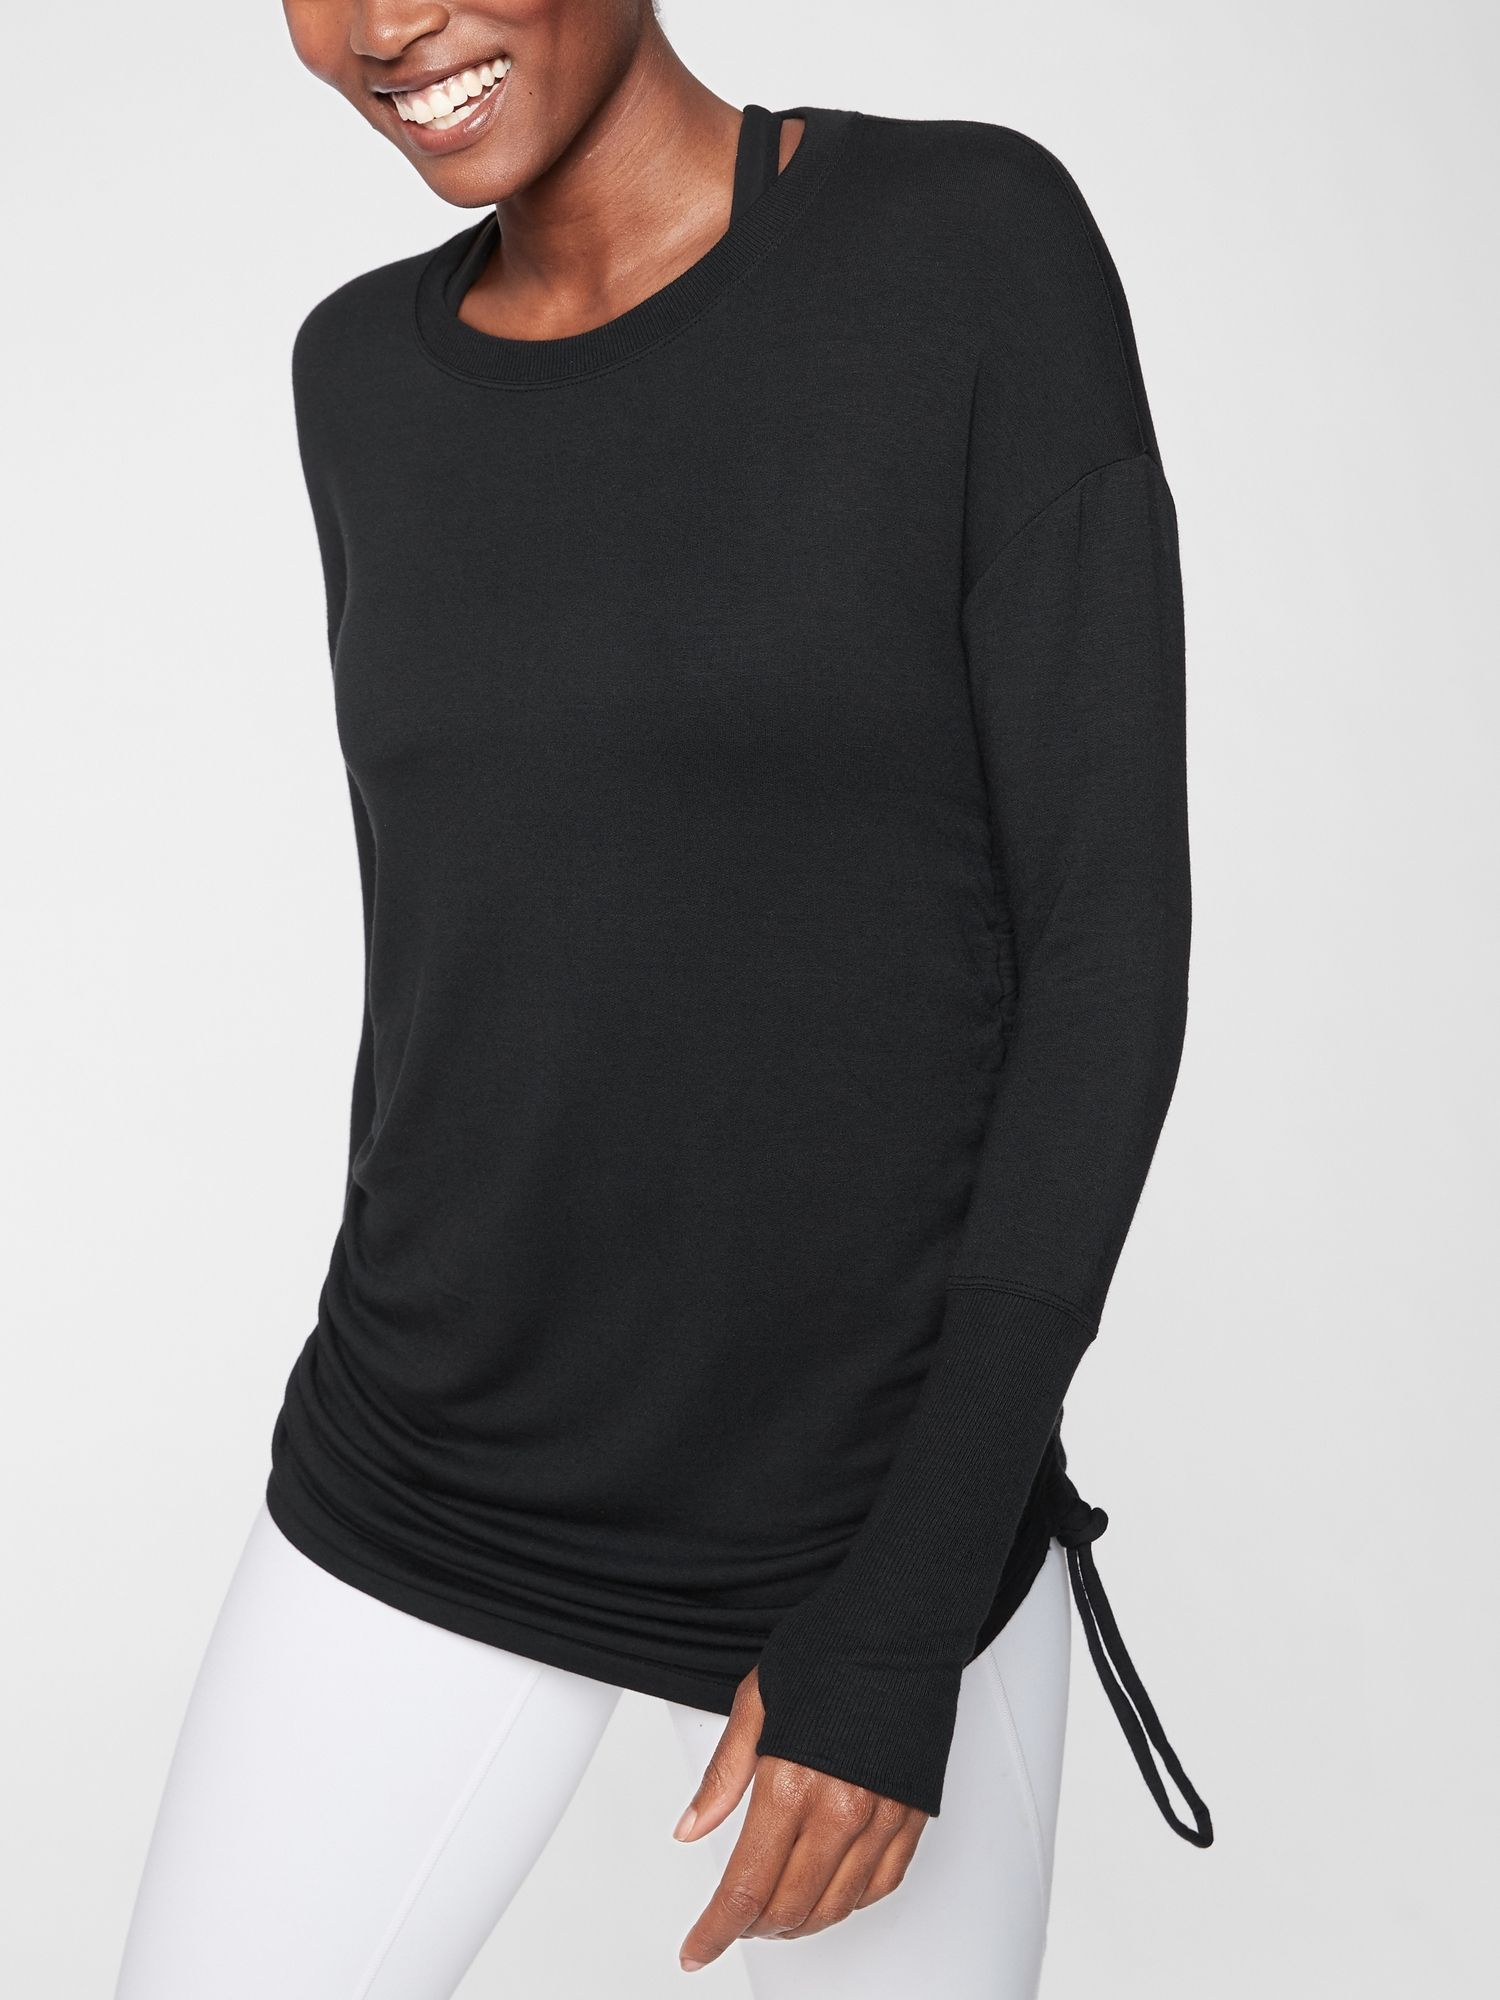 Drishti Ruched Sweatshirt Athleta Size Small But I Tried One On Similar And Xs Was Better So If Looks Baggie G Sweatshirt Tops Clothes For Women Sweatshirts [ 2000 x 1500 Pixel ]